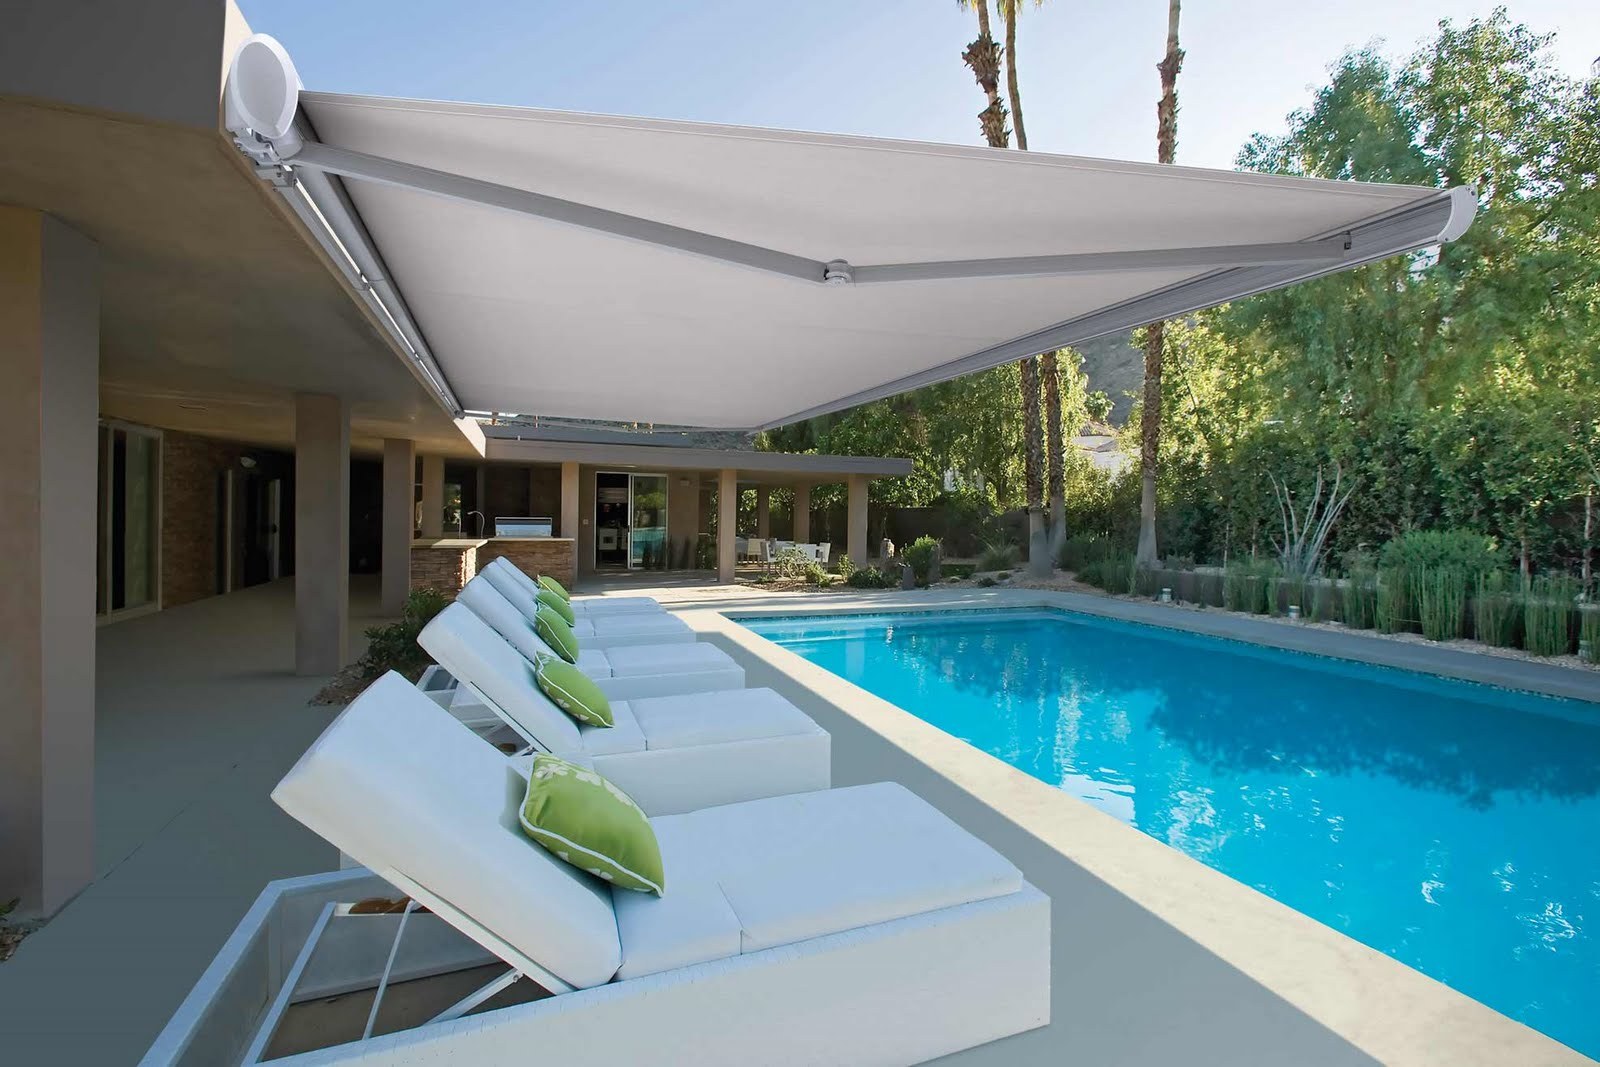 luxaflex australia new awnings add european flair to your alfresco living space. Black Bedroom Furniture Sets. Home Design Ideas